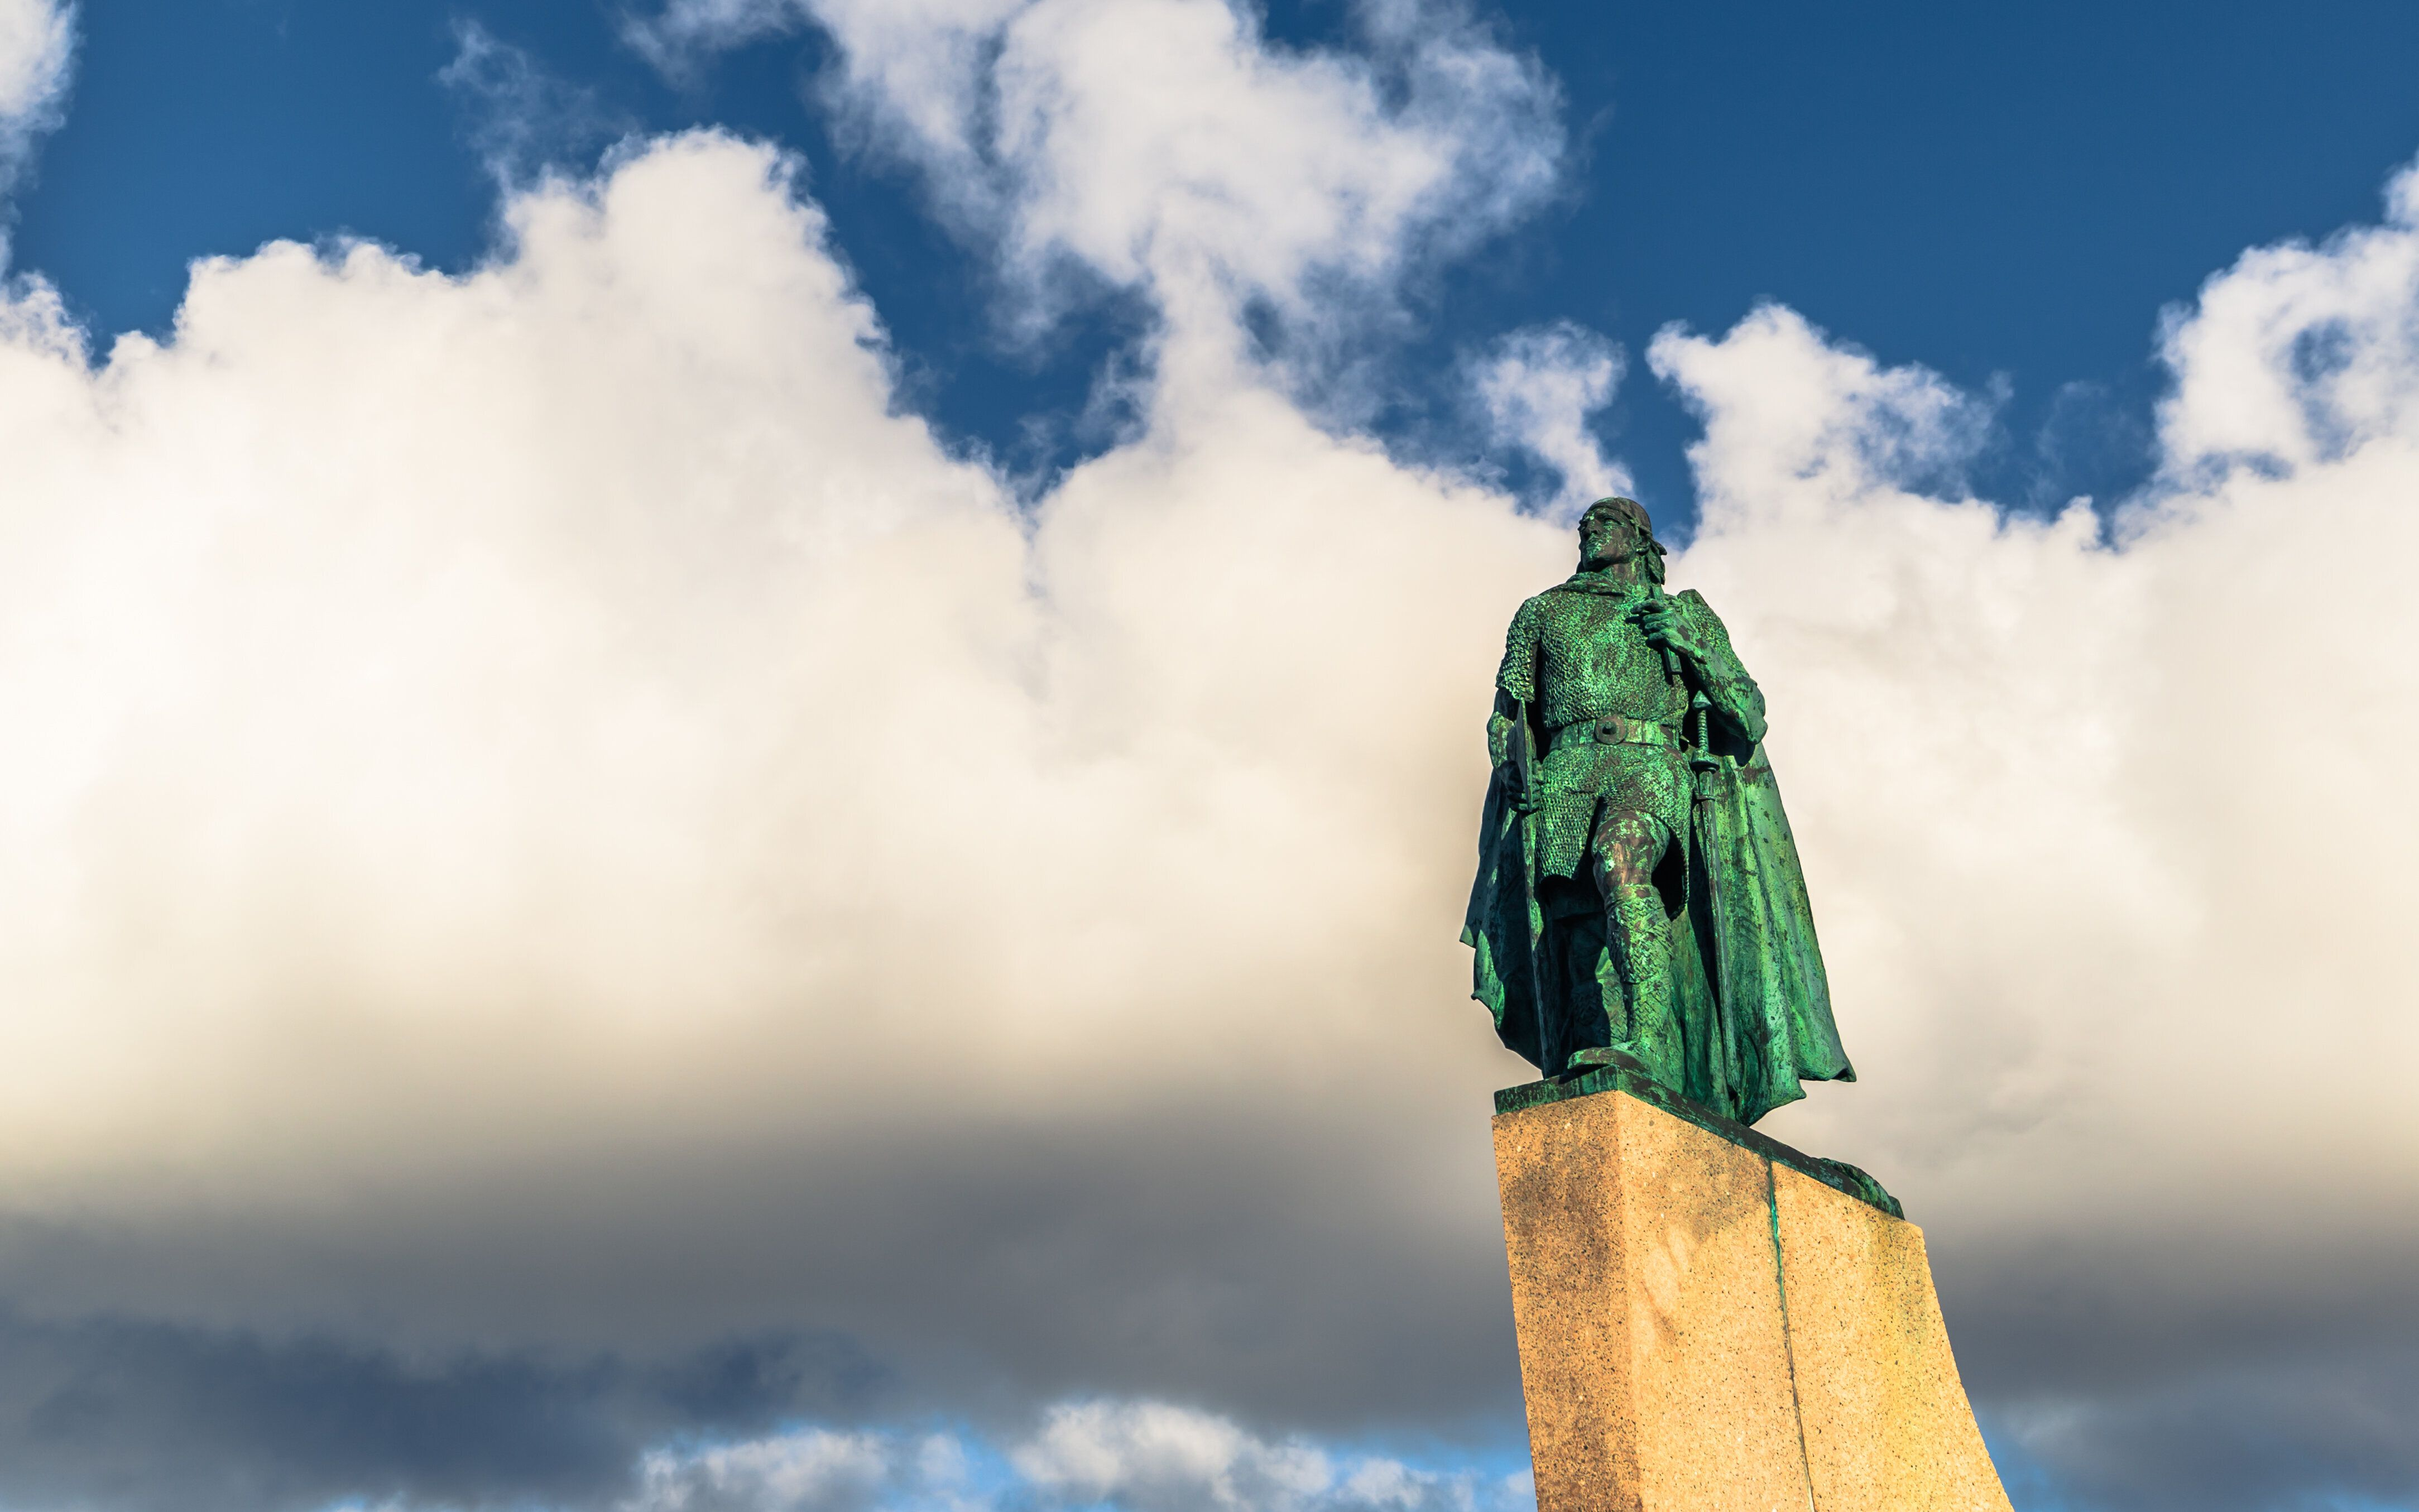 A statue of Leif Erikson in the center of Reykjavik, Iceland.